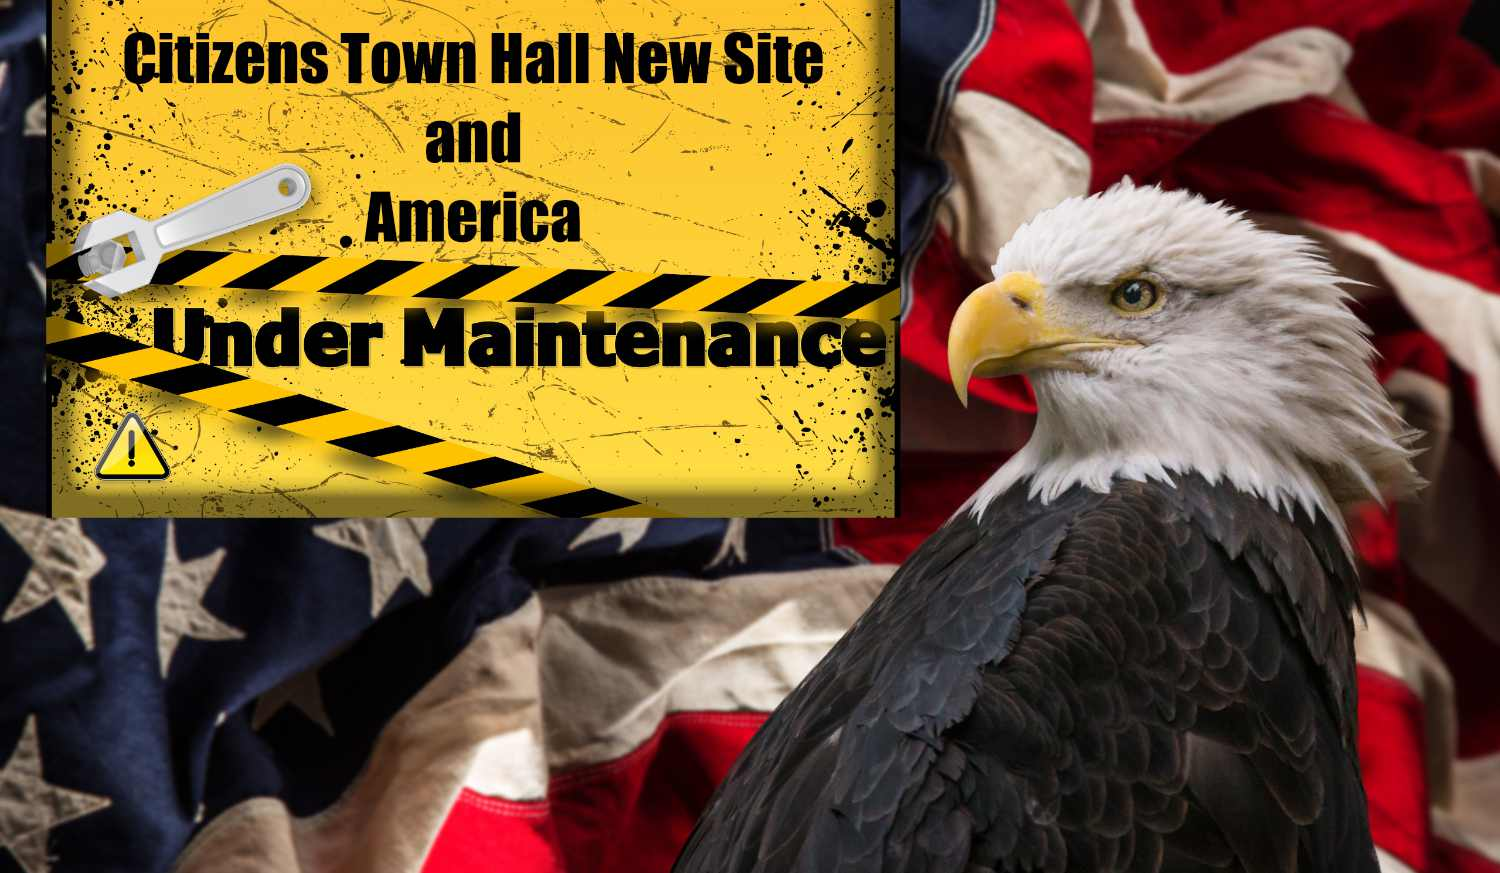 Citizens Town Hall New Site